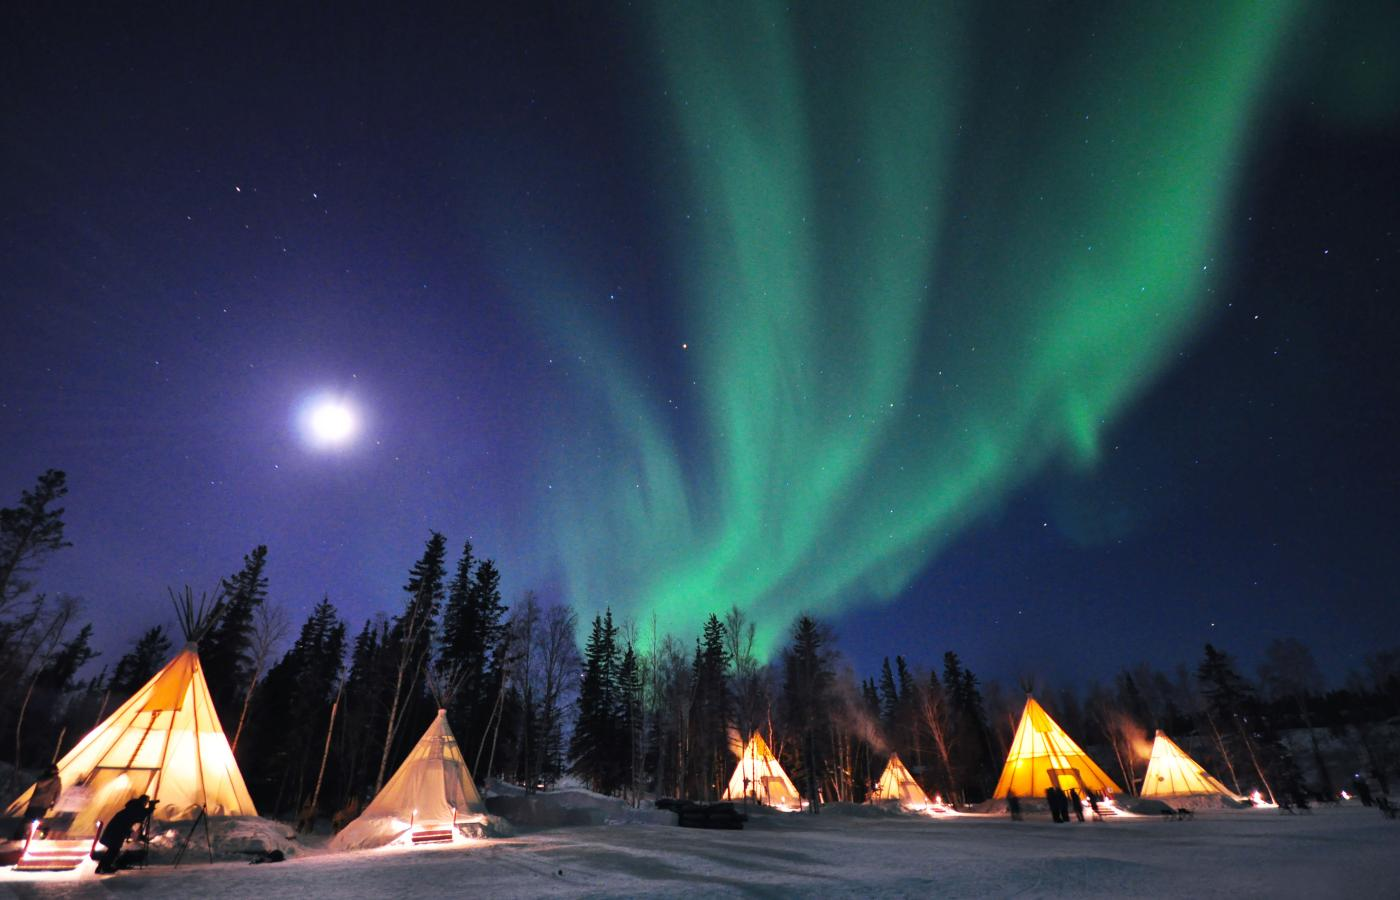 The northern lights dance in the night sky at Aurora Village in the Northwest Territories